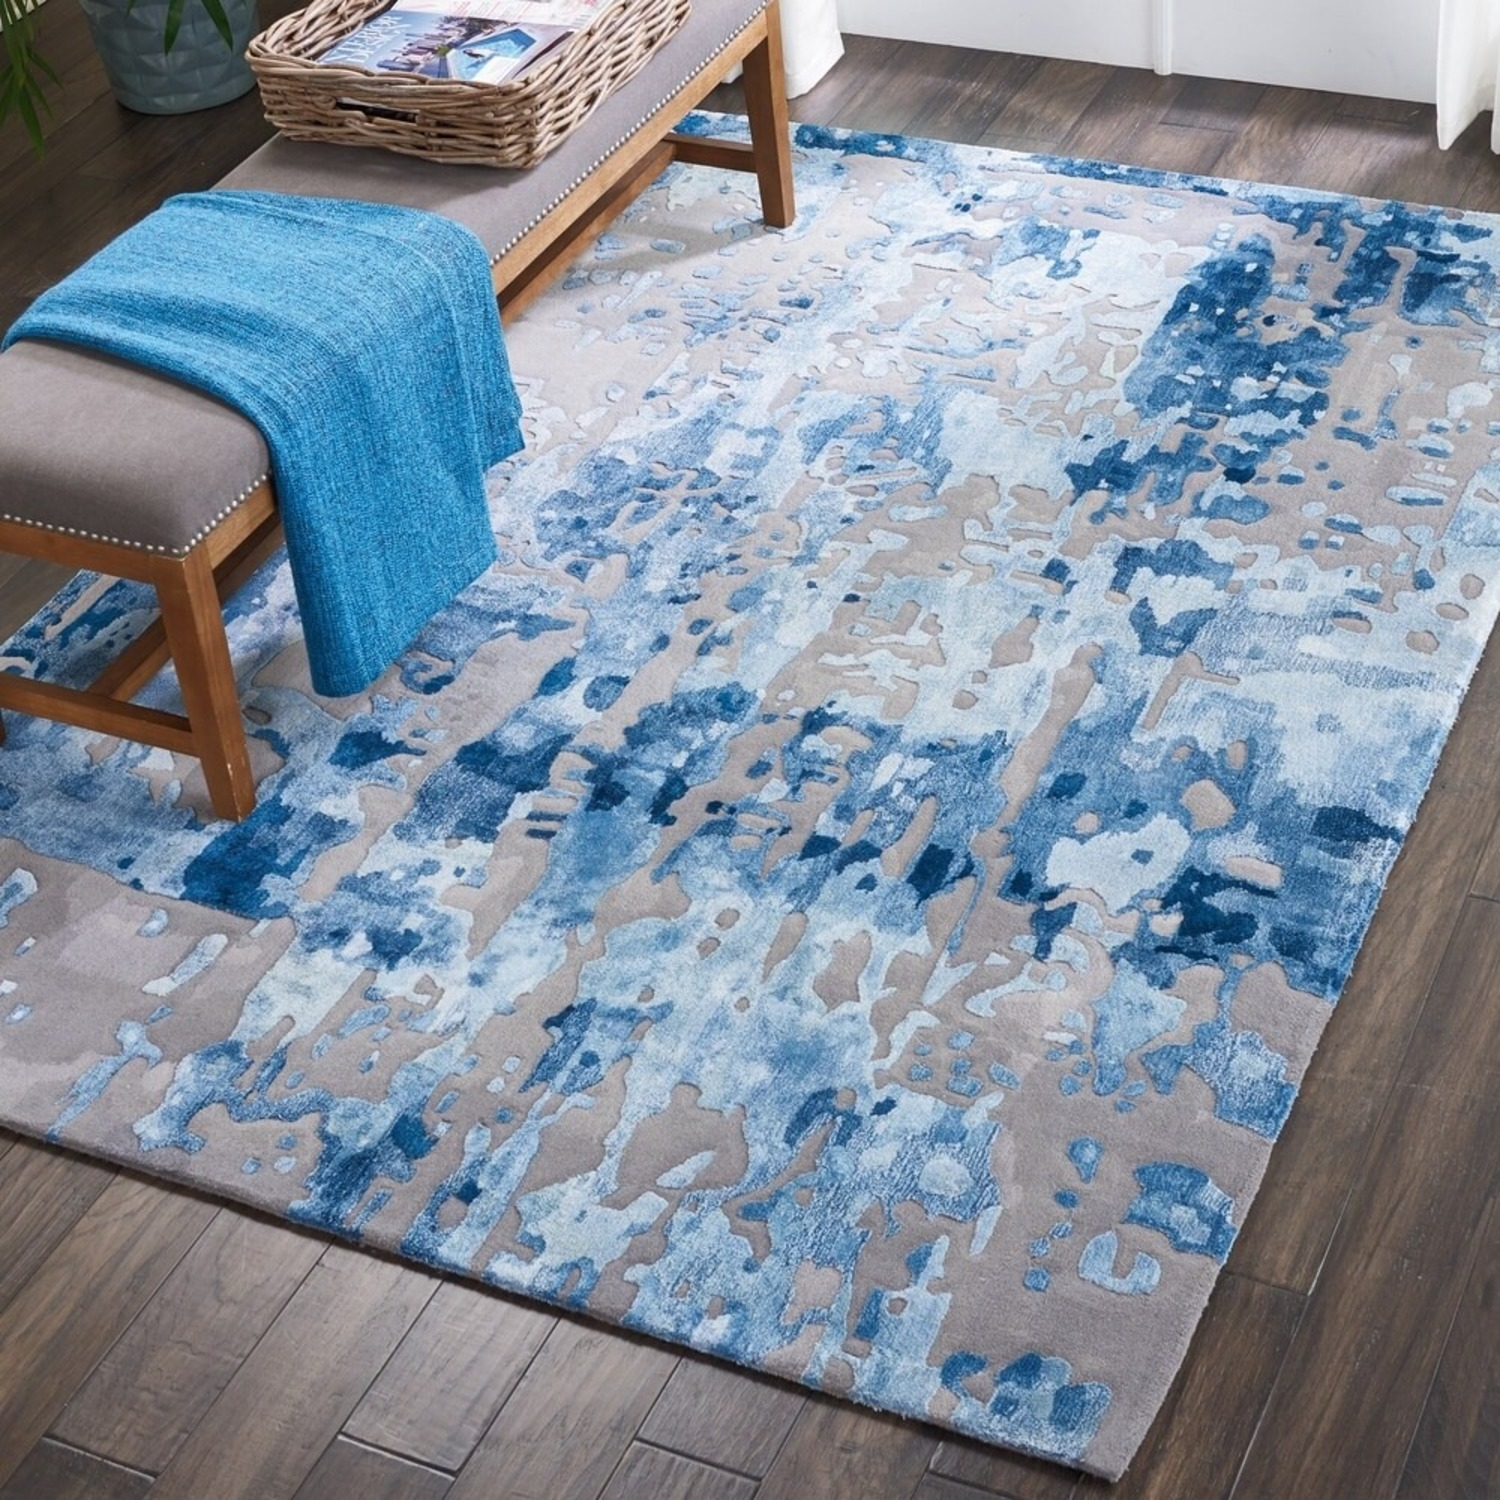 Nourison Blue Gray Abstract Area Rug 8ft x 10ft - image-1